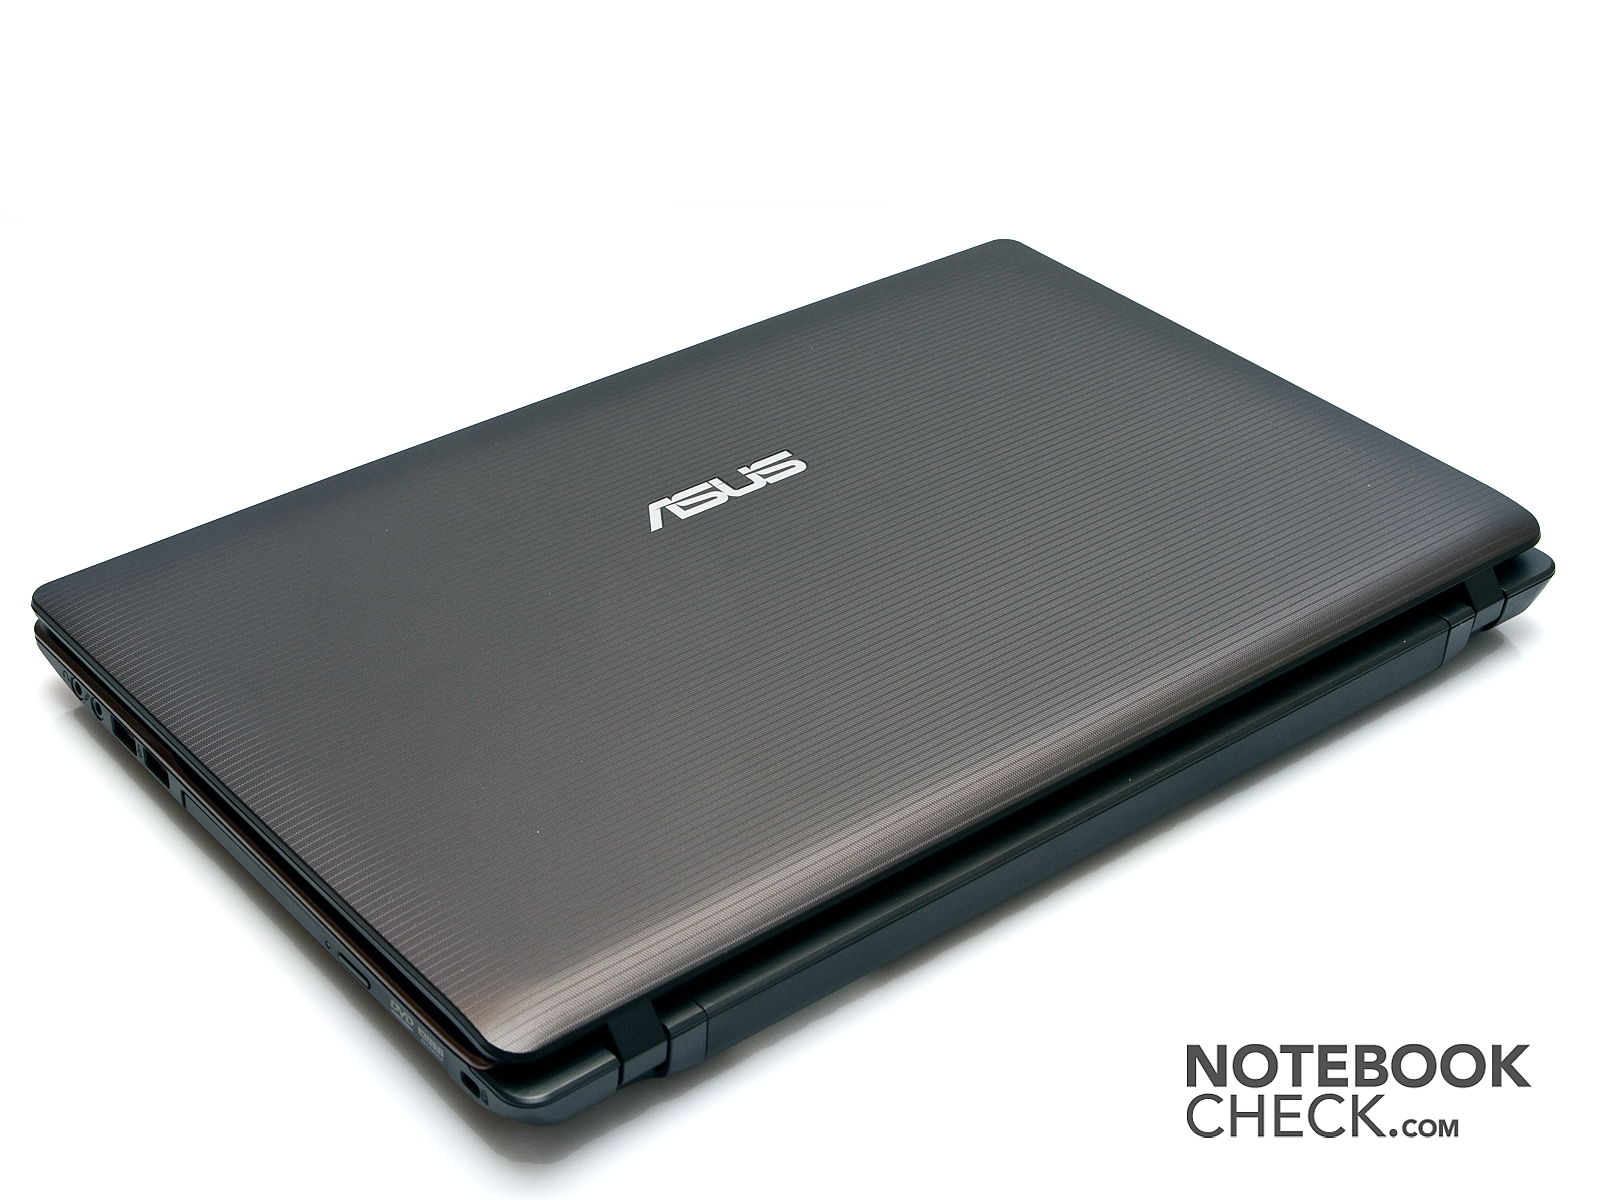 ASUS P41SV NOTEBOOK USB 3.0 WINDOWS 7 64BIT DRIVER